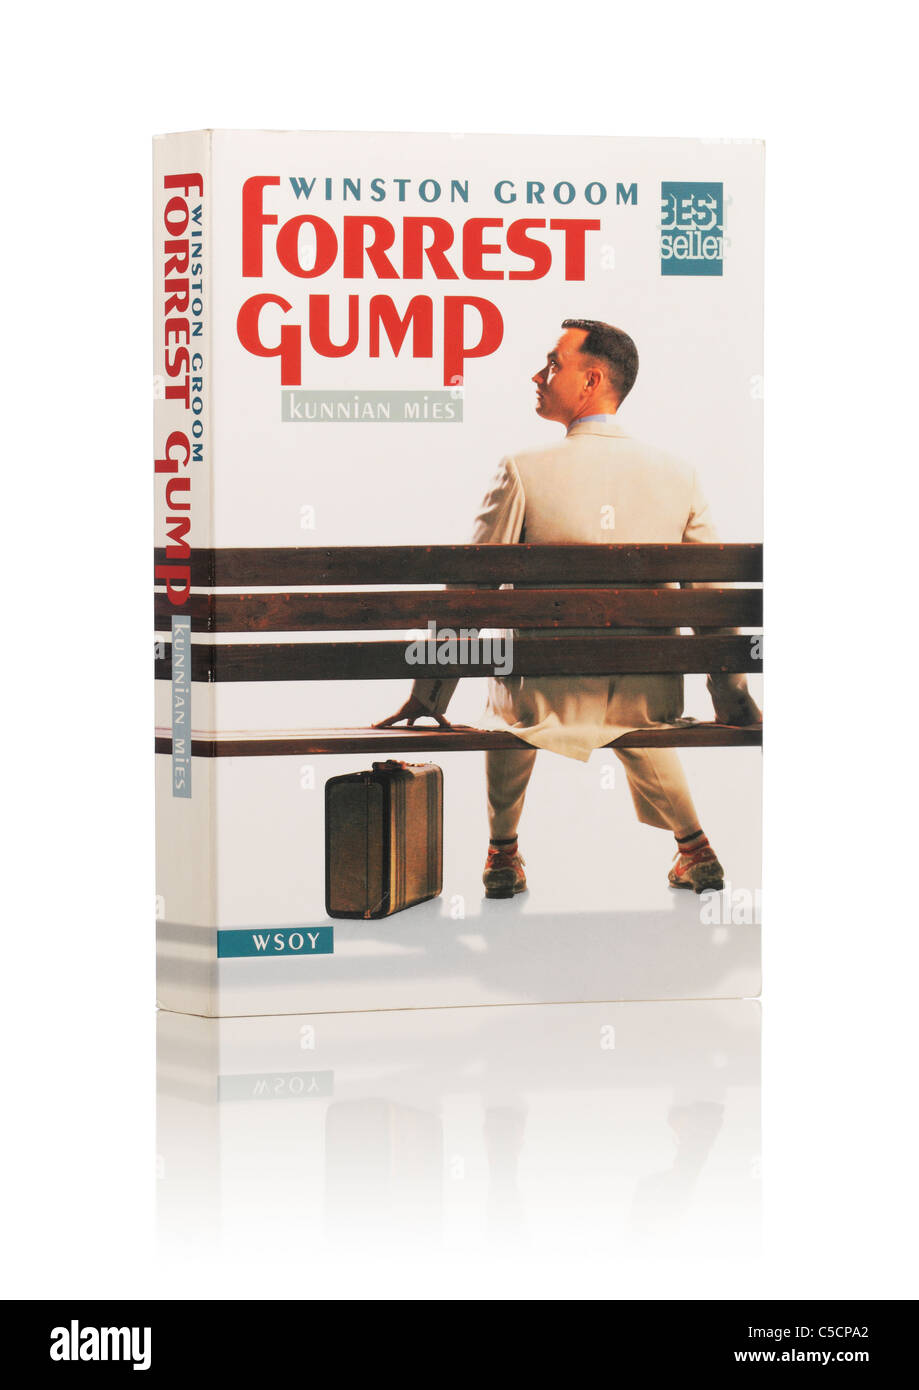 Winston Groom's Novel 'Forrest Gump'. Here in Finnish edition from 1995. - Stock Image